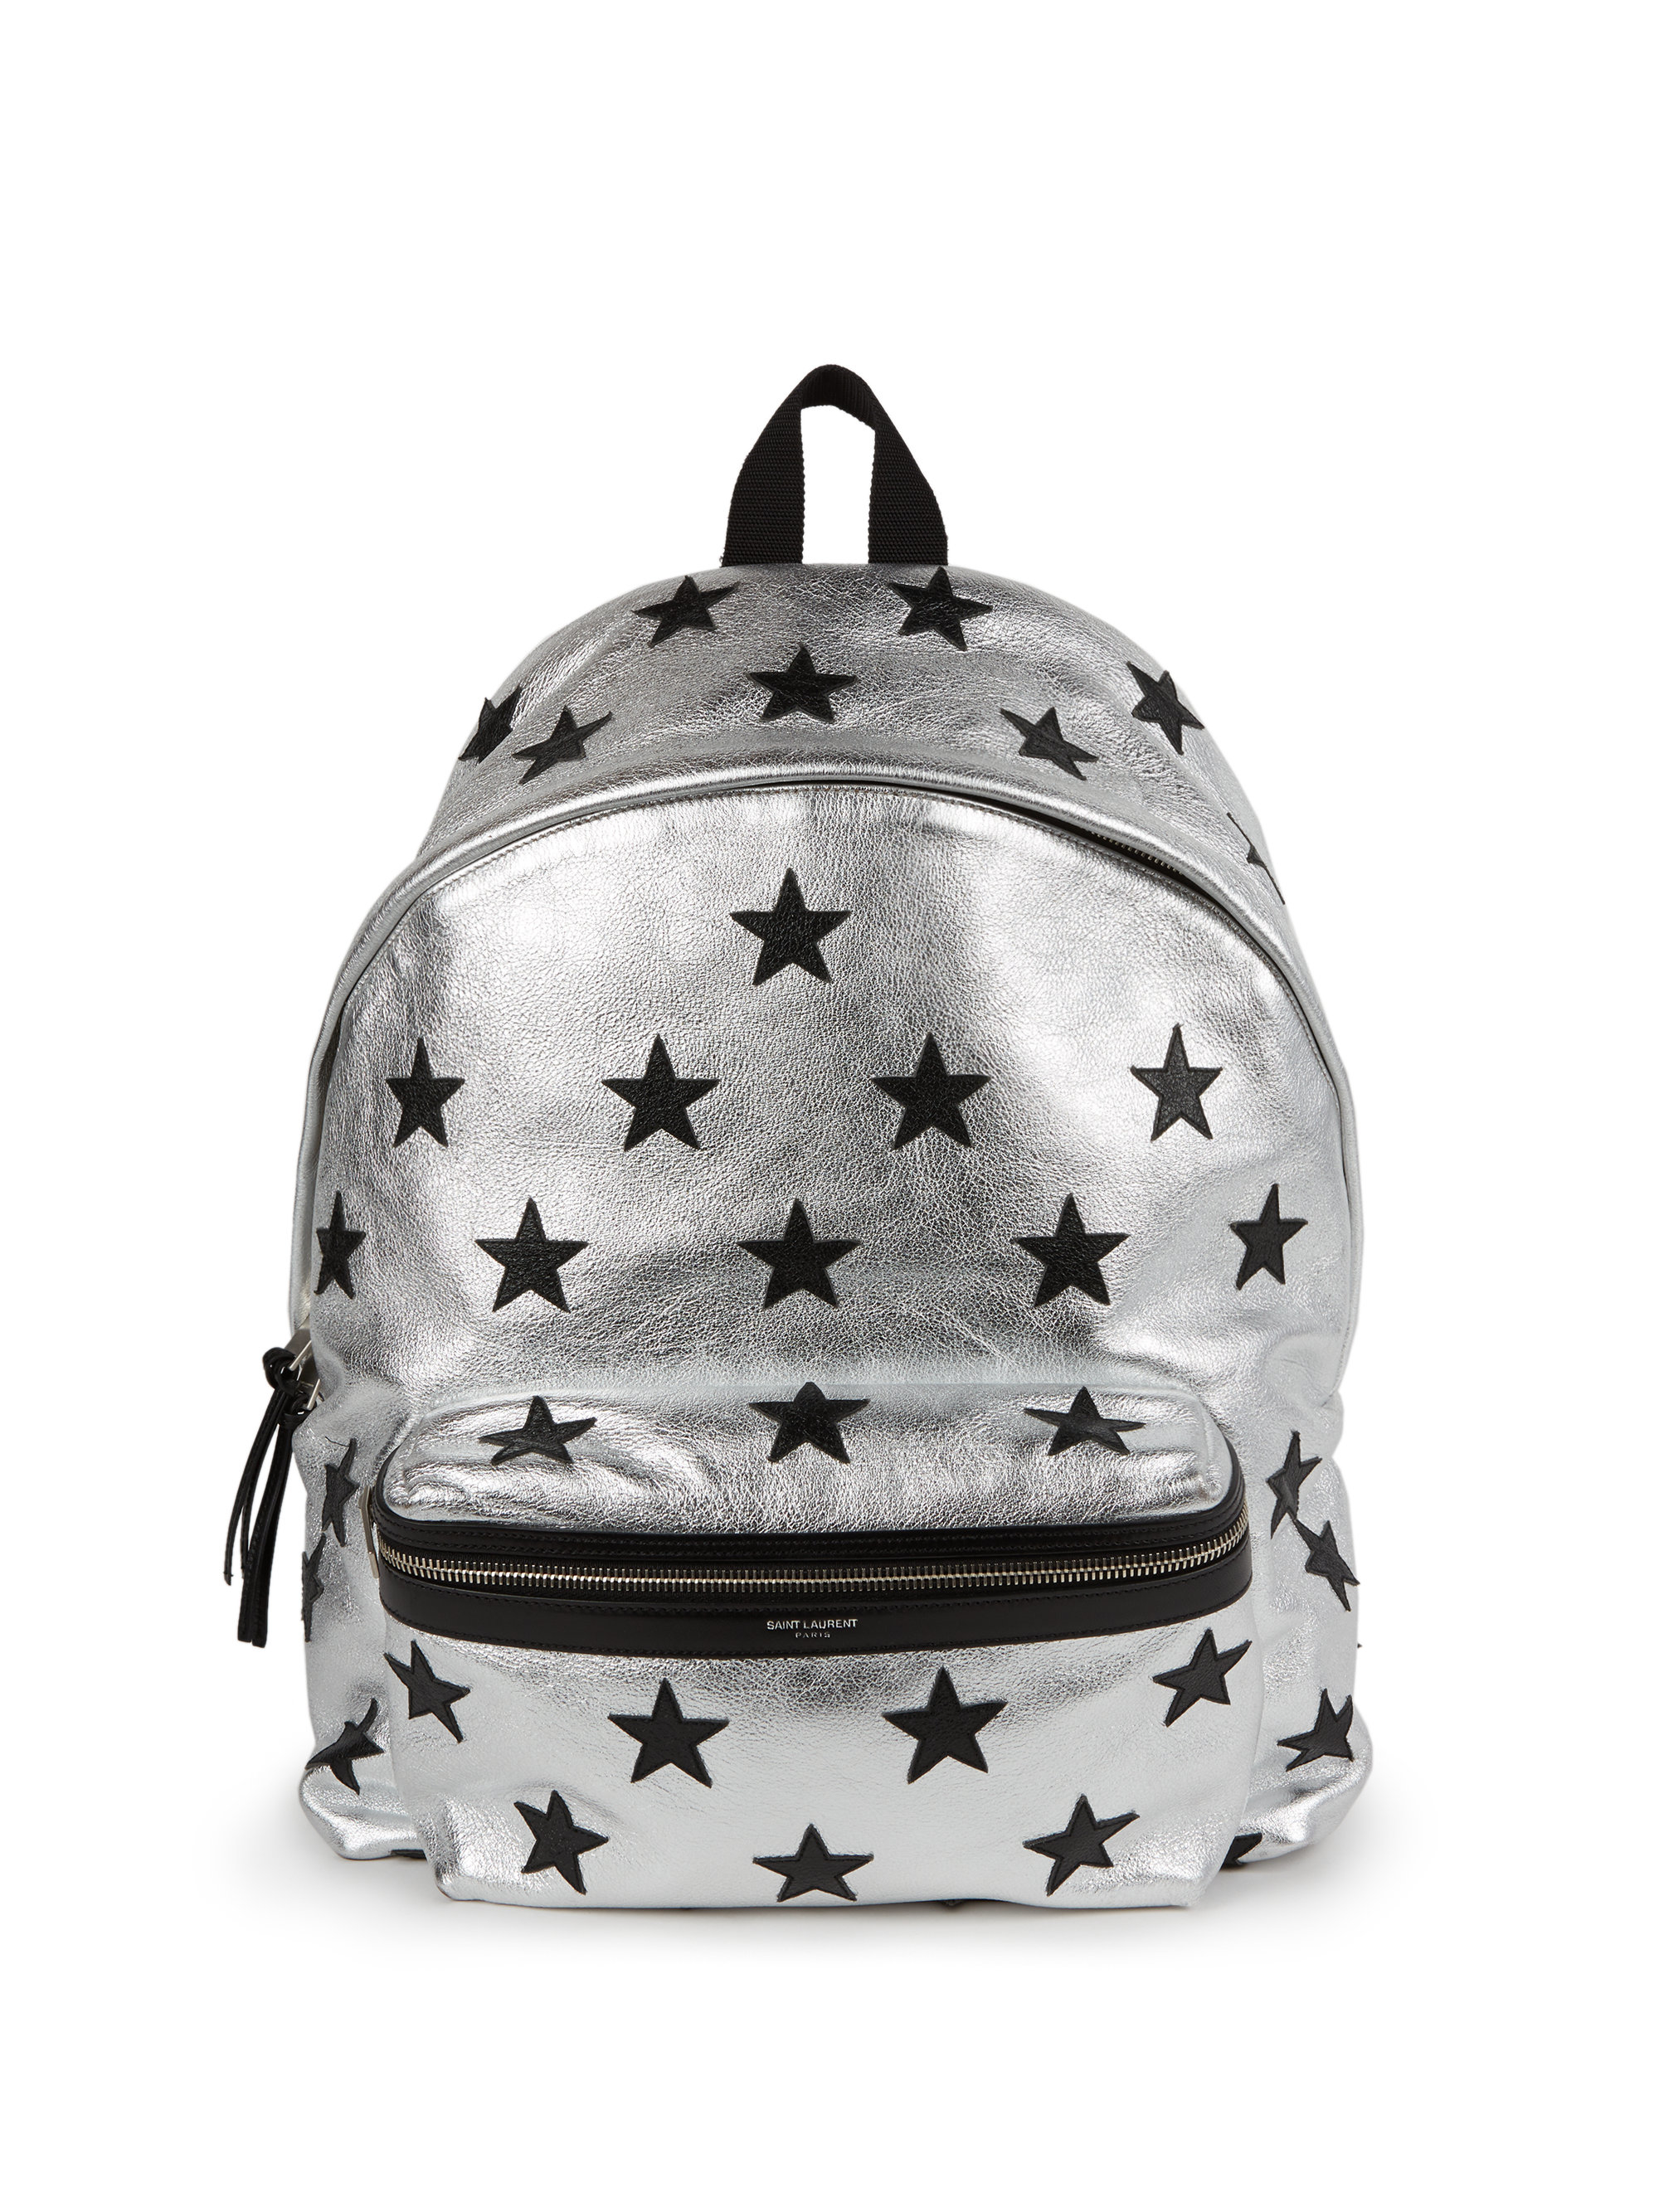 91f958c38bfe Lyst - Saint Laurent Classic Hunting California Star Backpack in ...